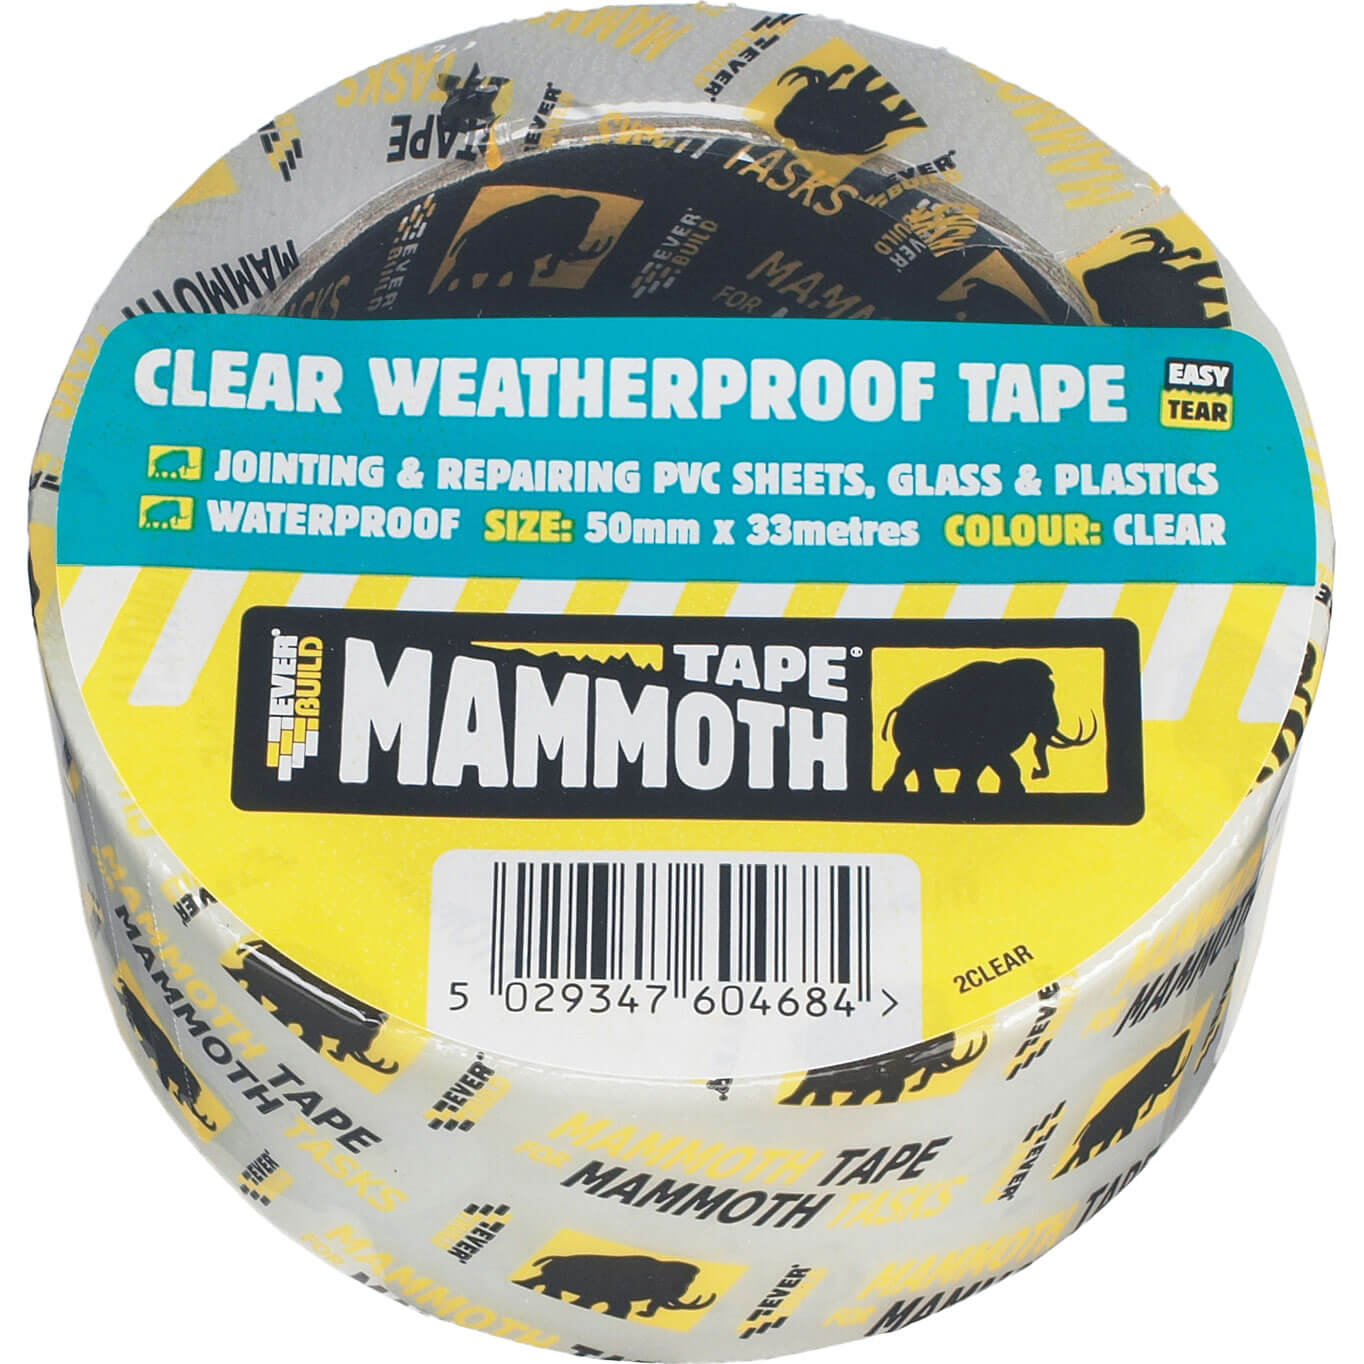 Image of Everbuild Mammoth Weatherproof Clear Tape Clear 50mm 10m